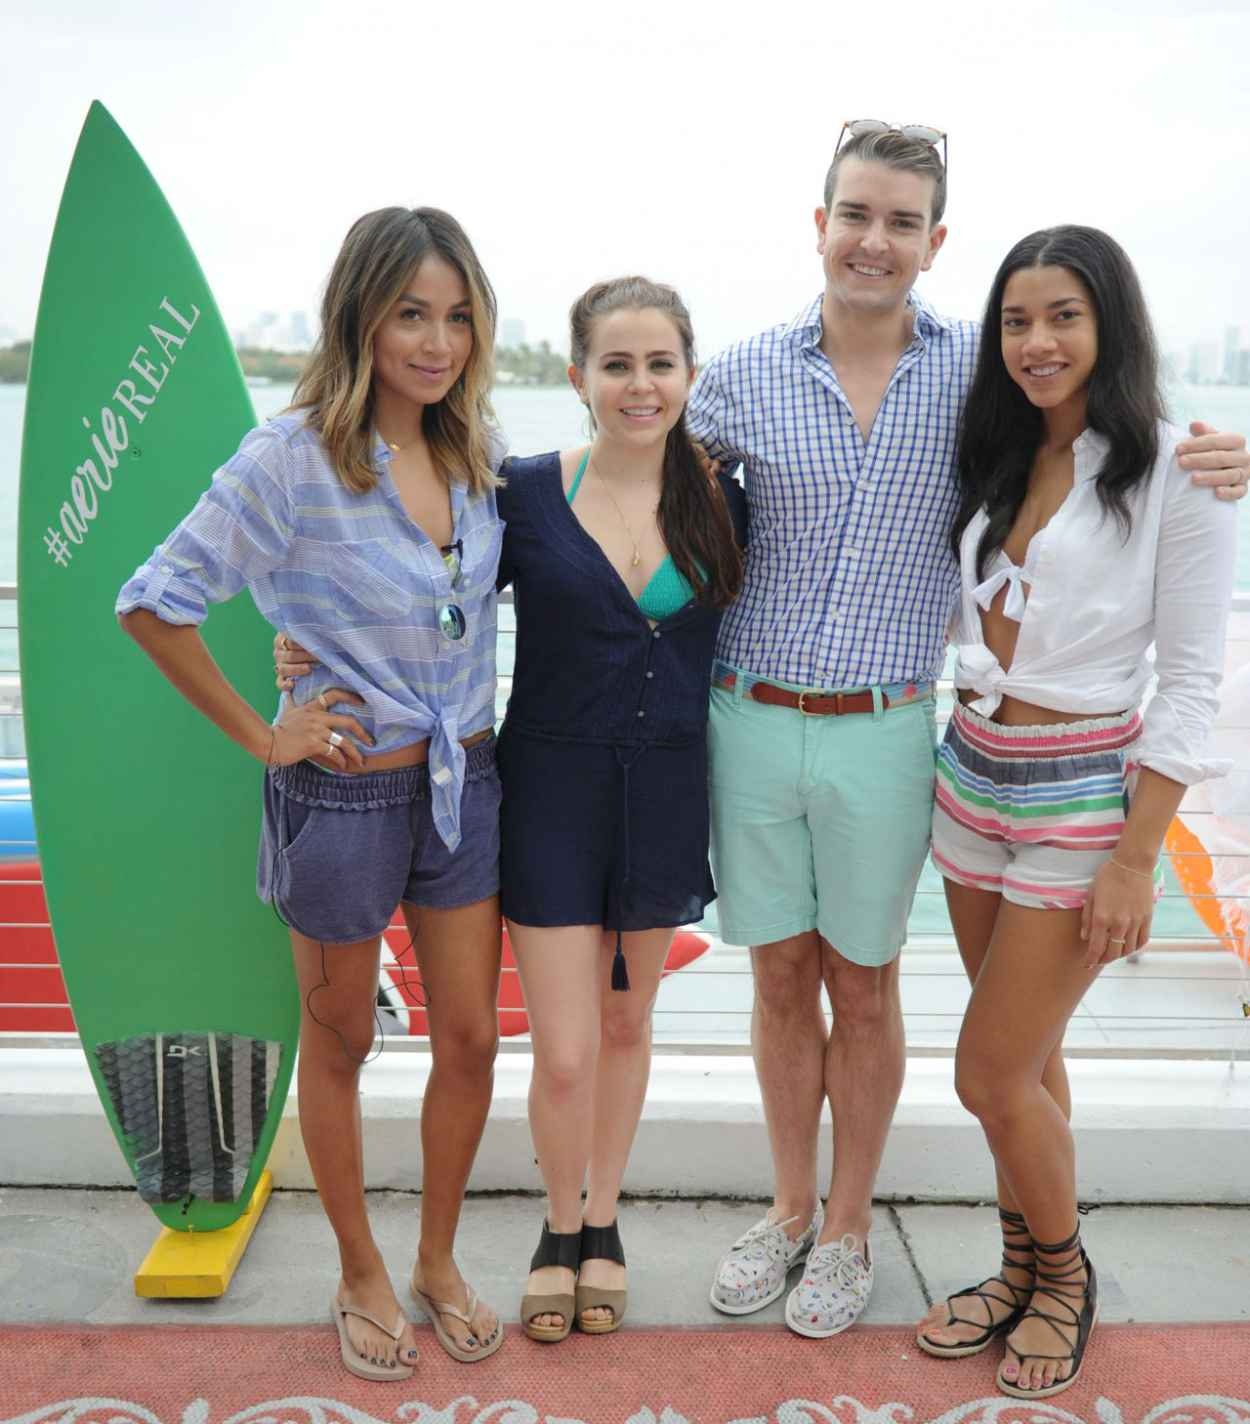 Mae Whitman - Aerie Celebrates Swim With #AerieREAL Selfie in Miami Beach, March 2015-4